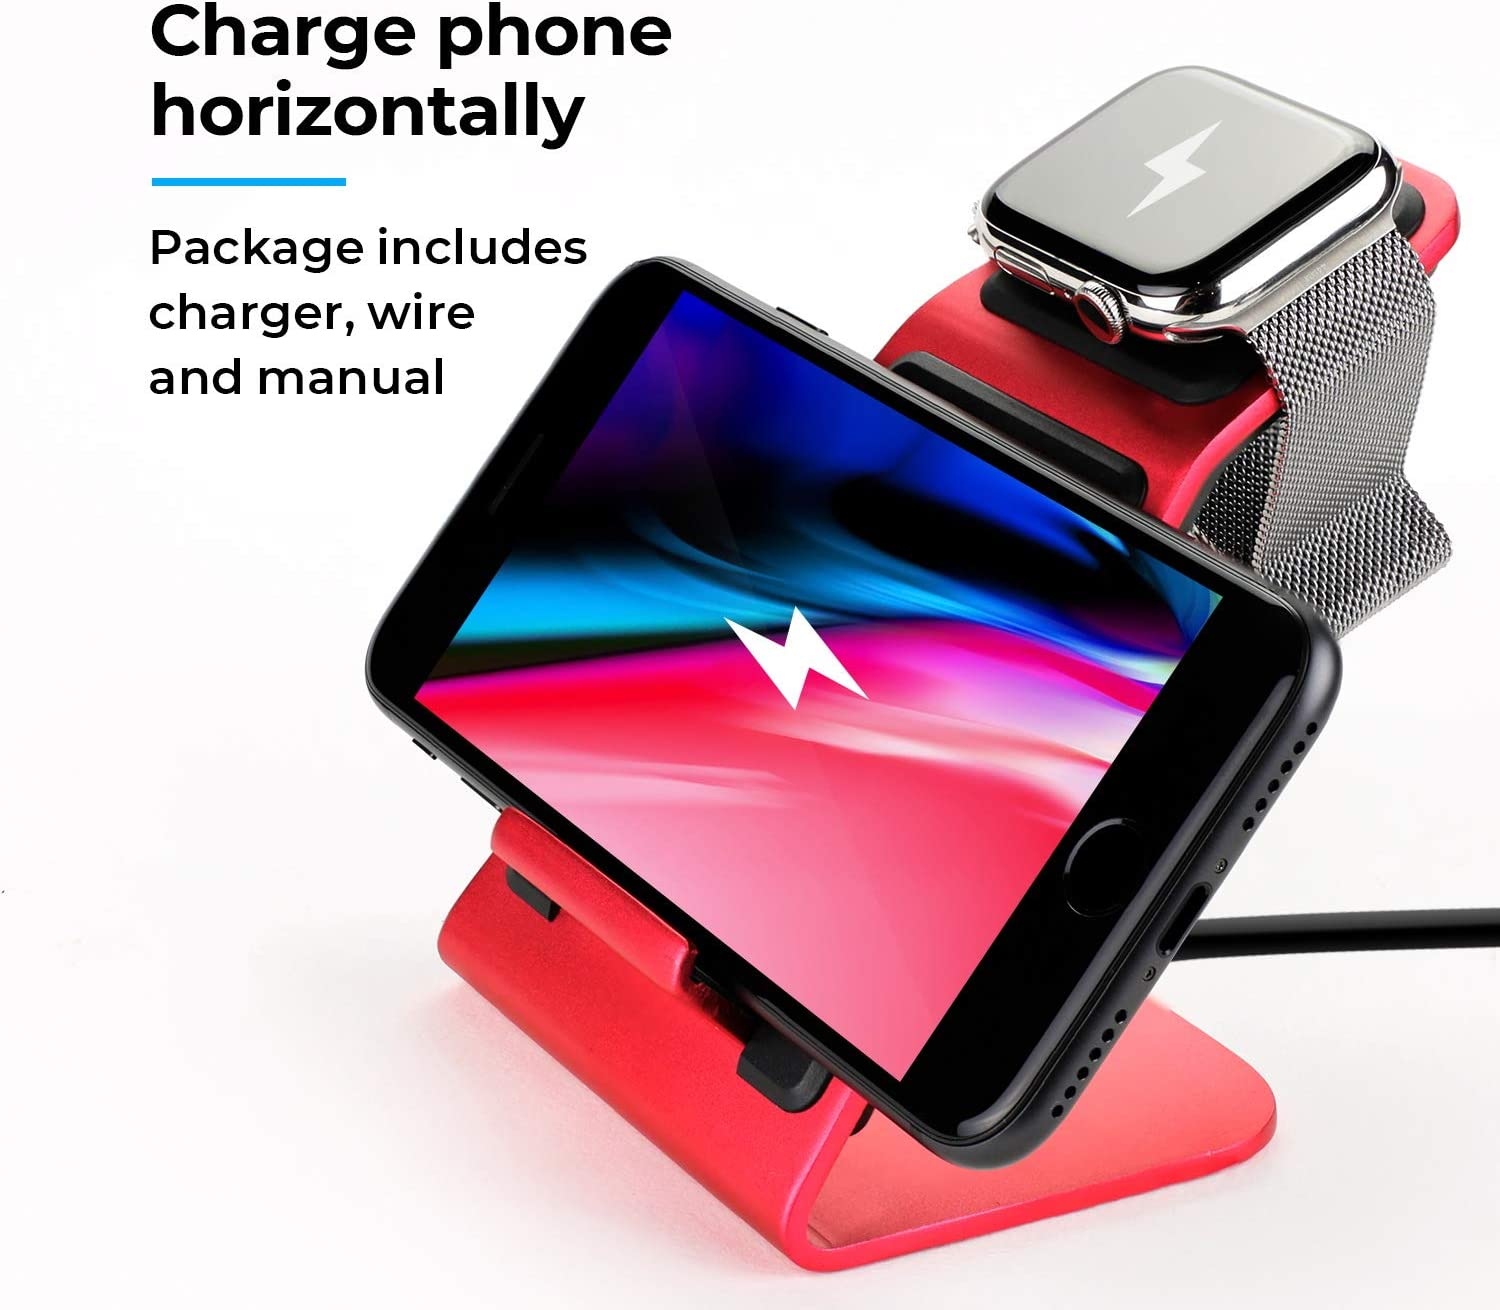 Metal Wireless Charging Station 2 in 1 Universal Fast Wireless Stand Duo Charger Dock Horizontally Safe Organizer Nightstand for Apple Watch, iPhone, Samsung Galaxy and Qi Smartphone (Red)